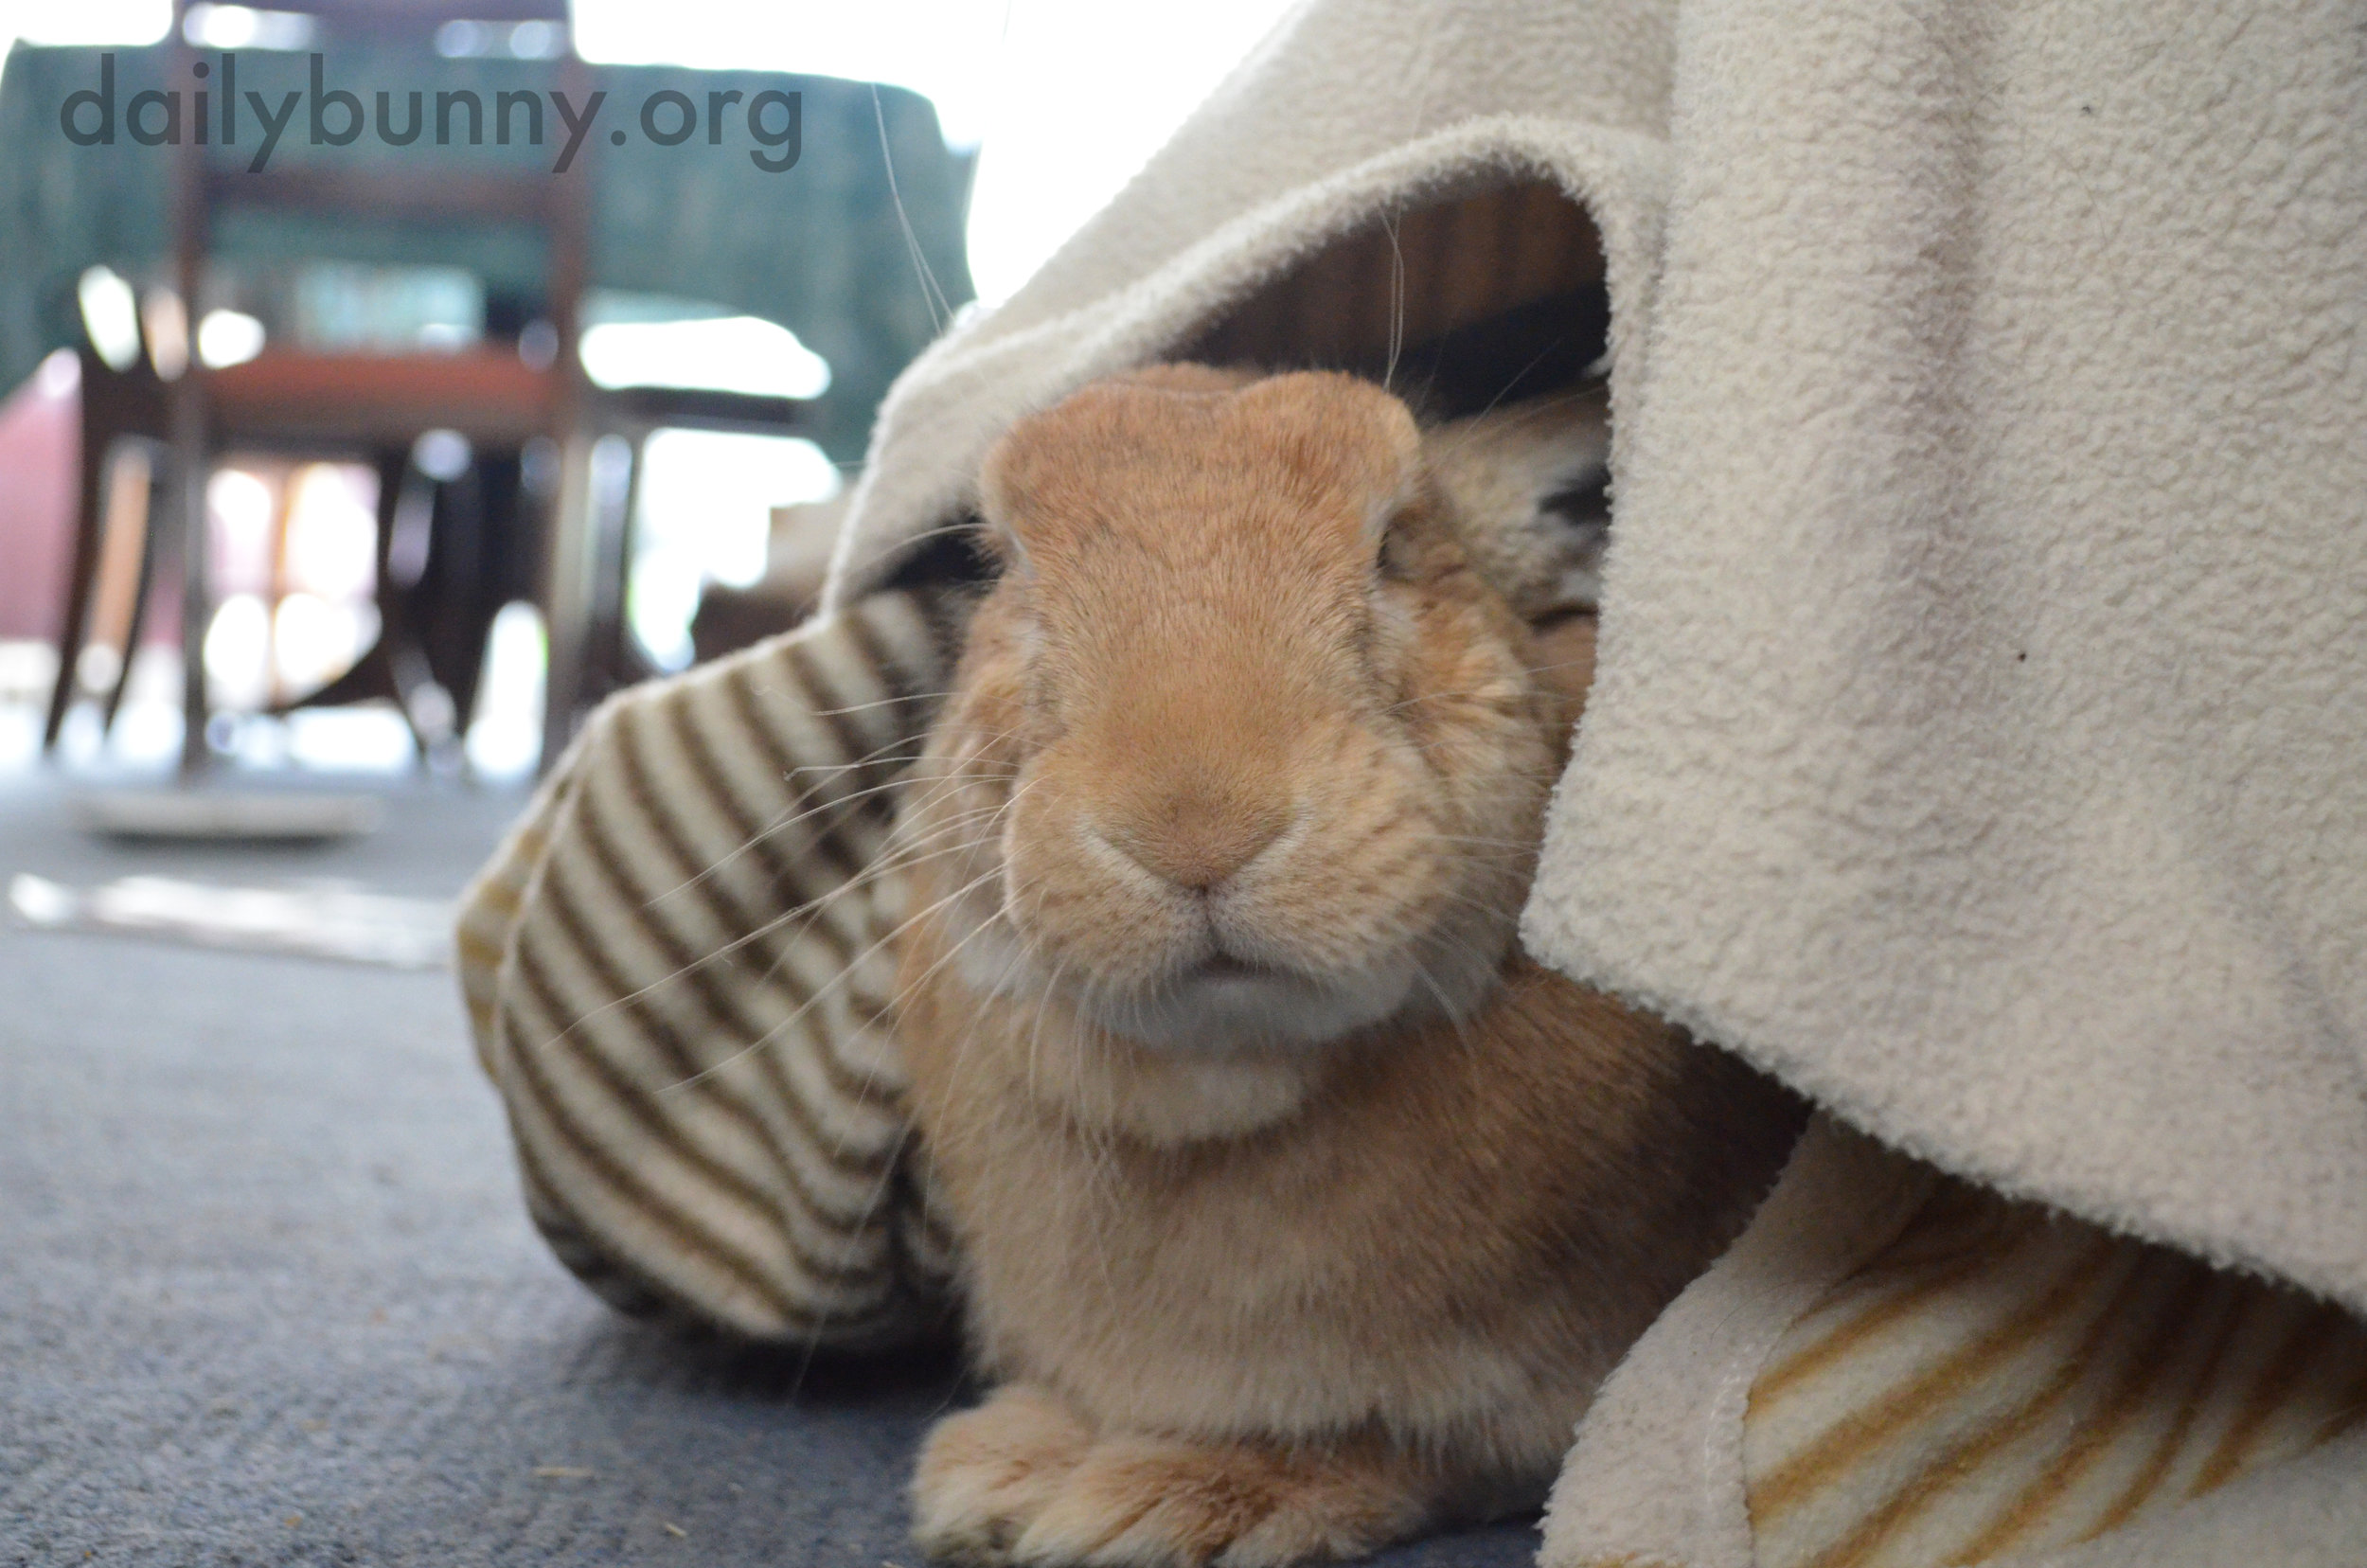 Who Disturbs Bunny in His Blanket Fort?